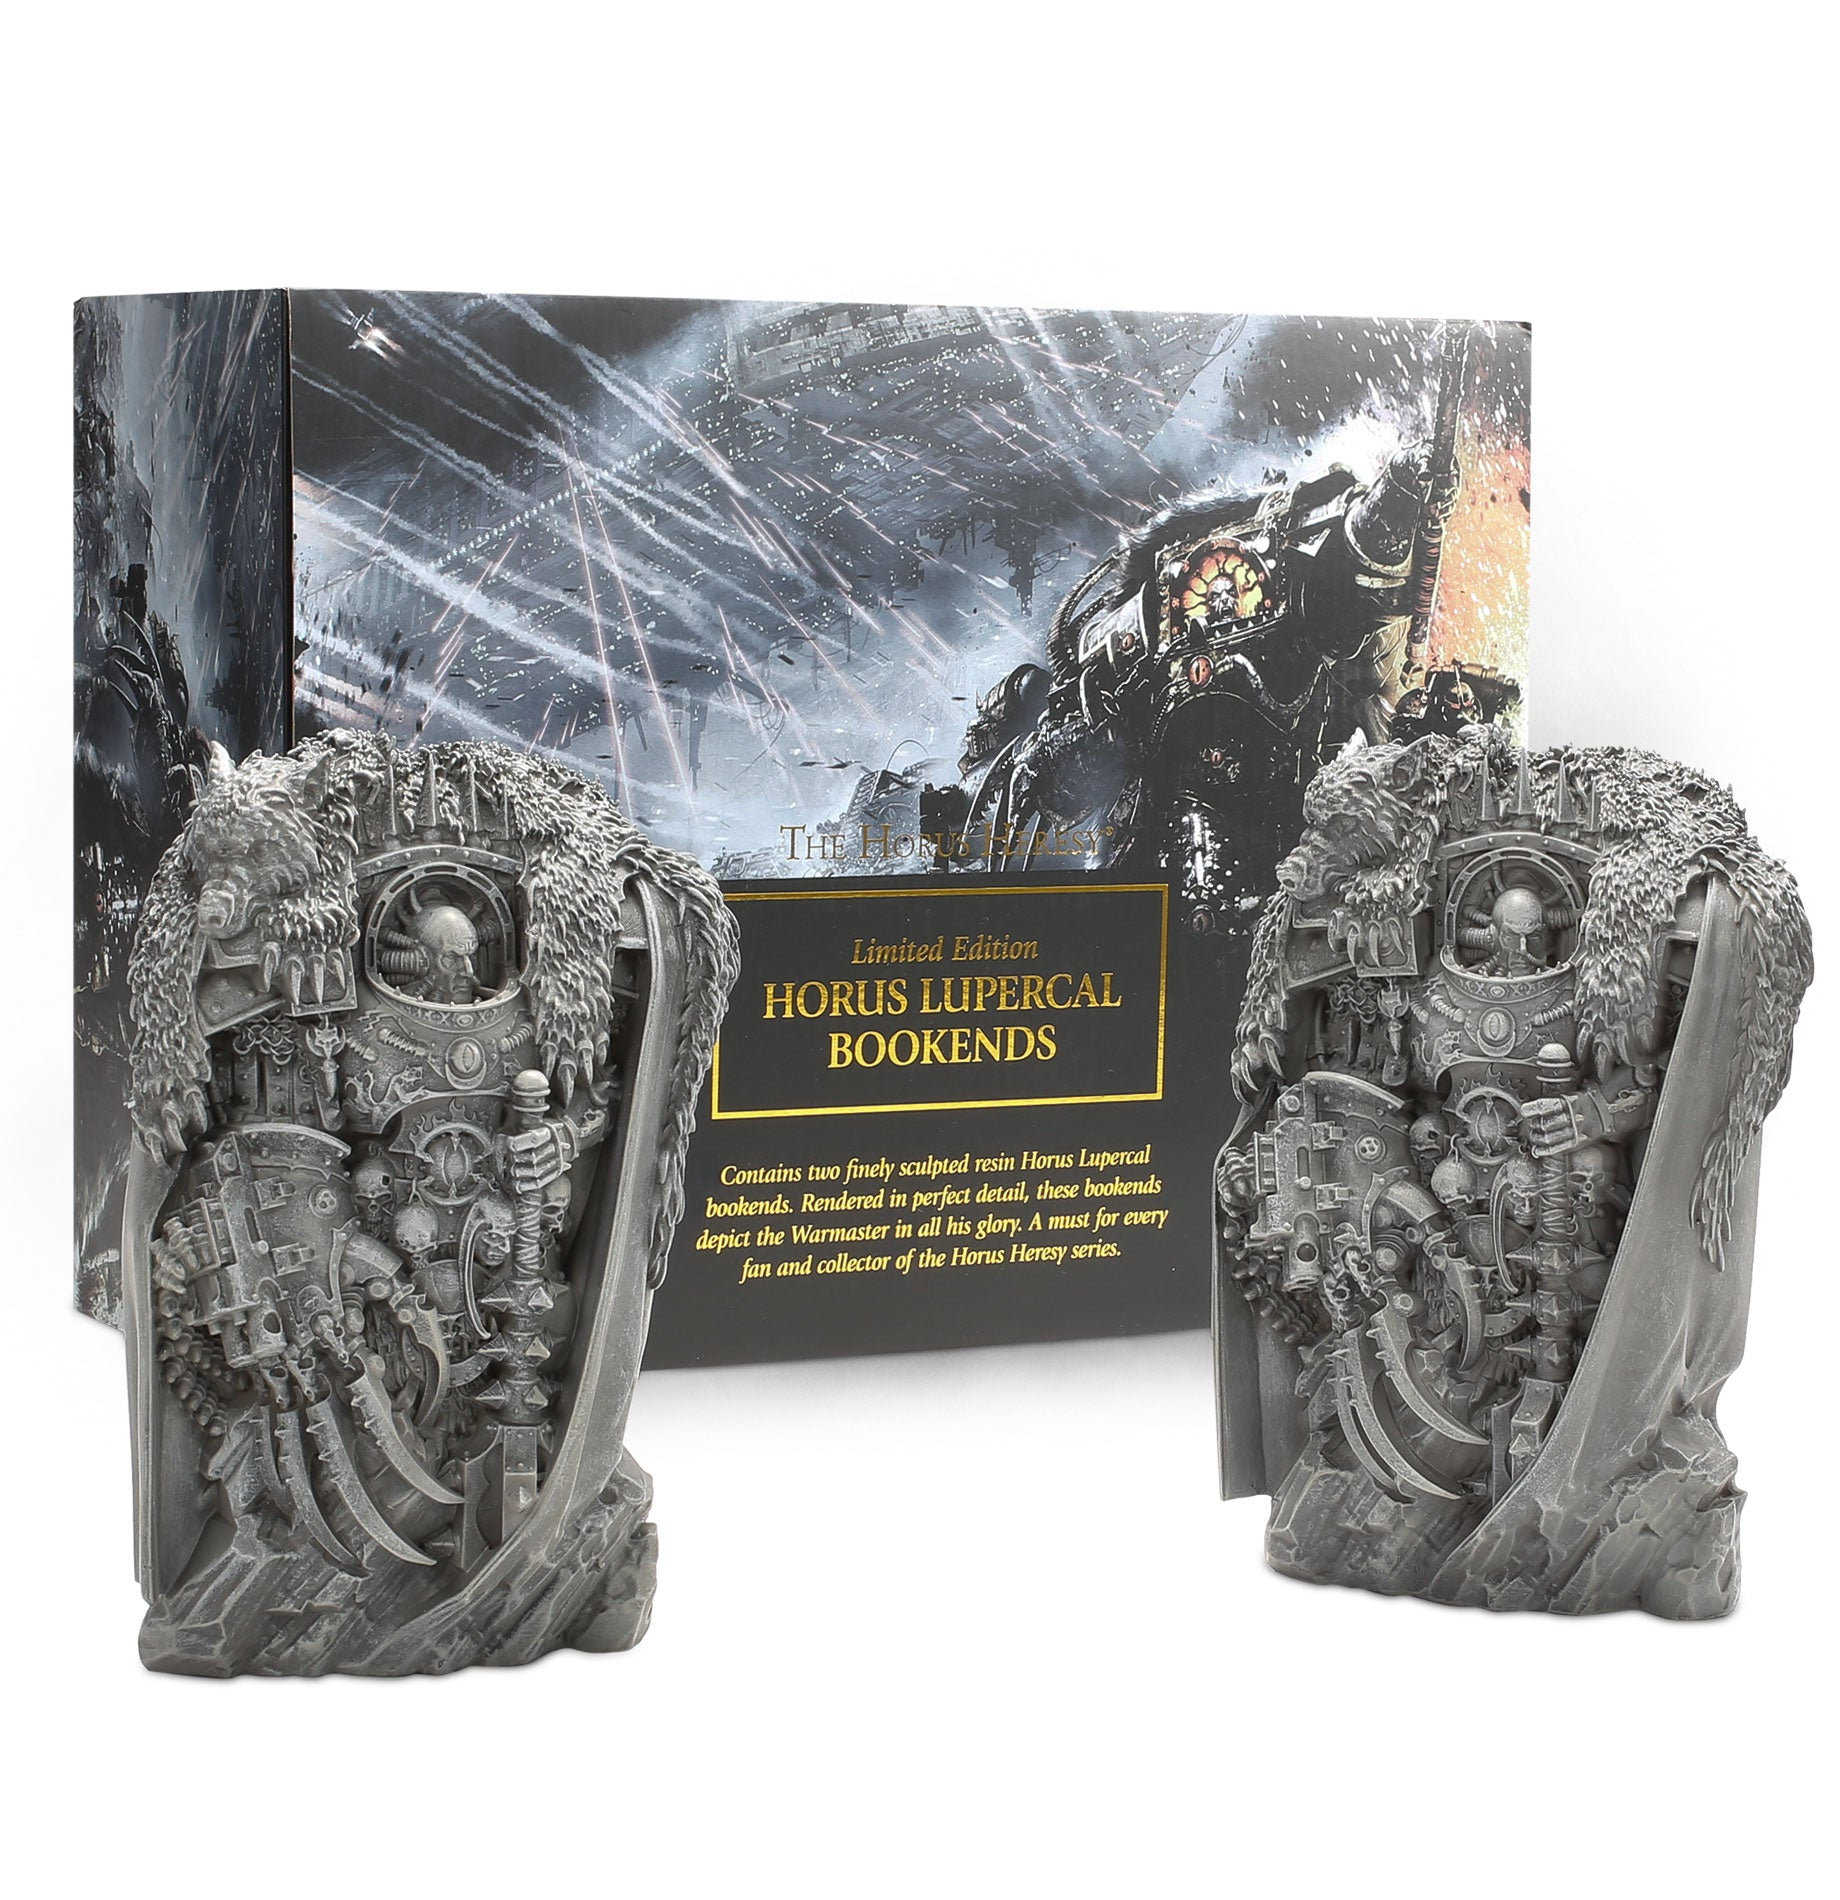 BLACK LIBARY HORUS HERESY BOOK ENDS | Red Claw Gaming